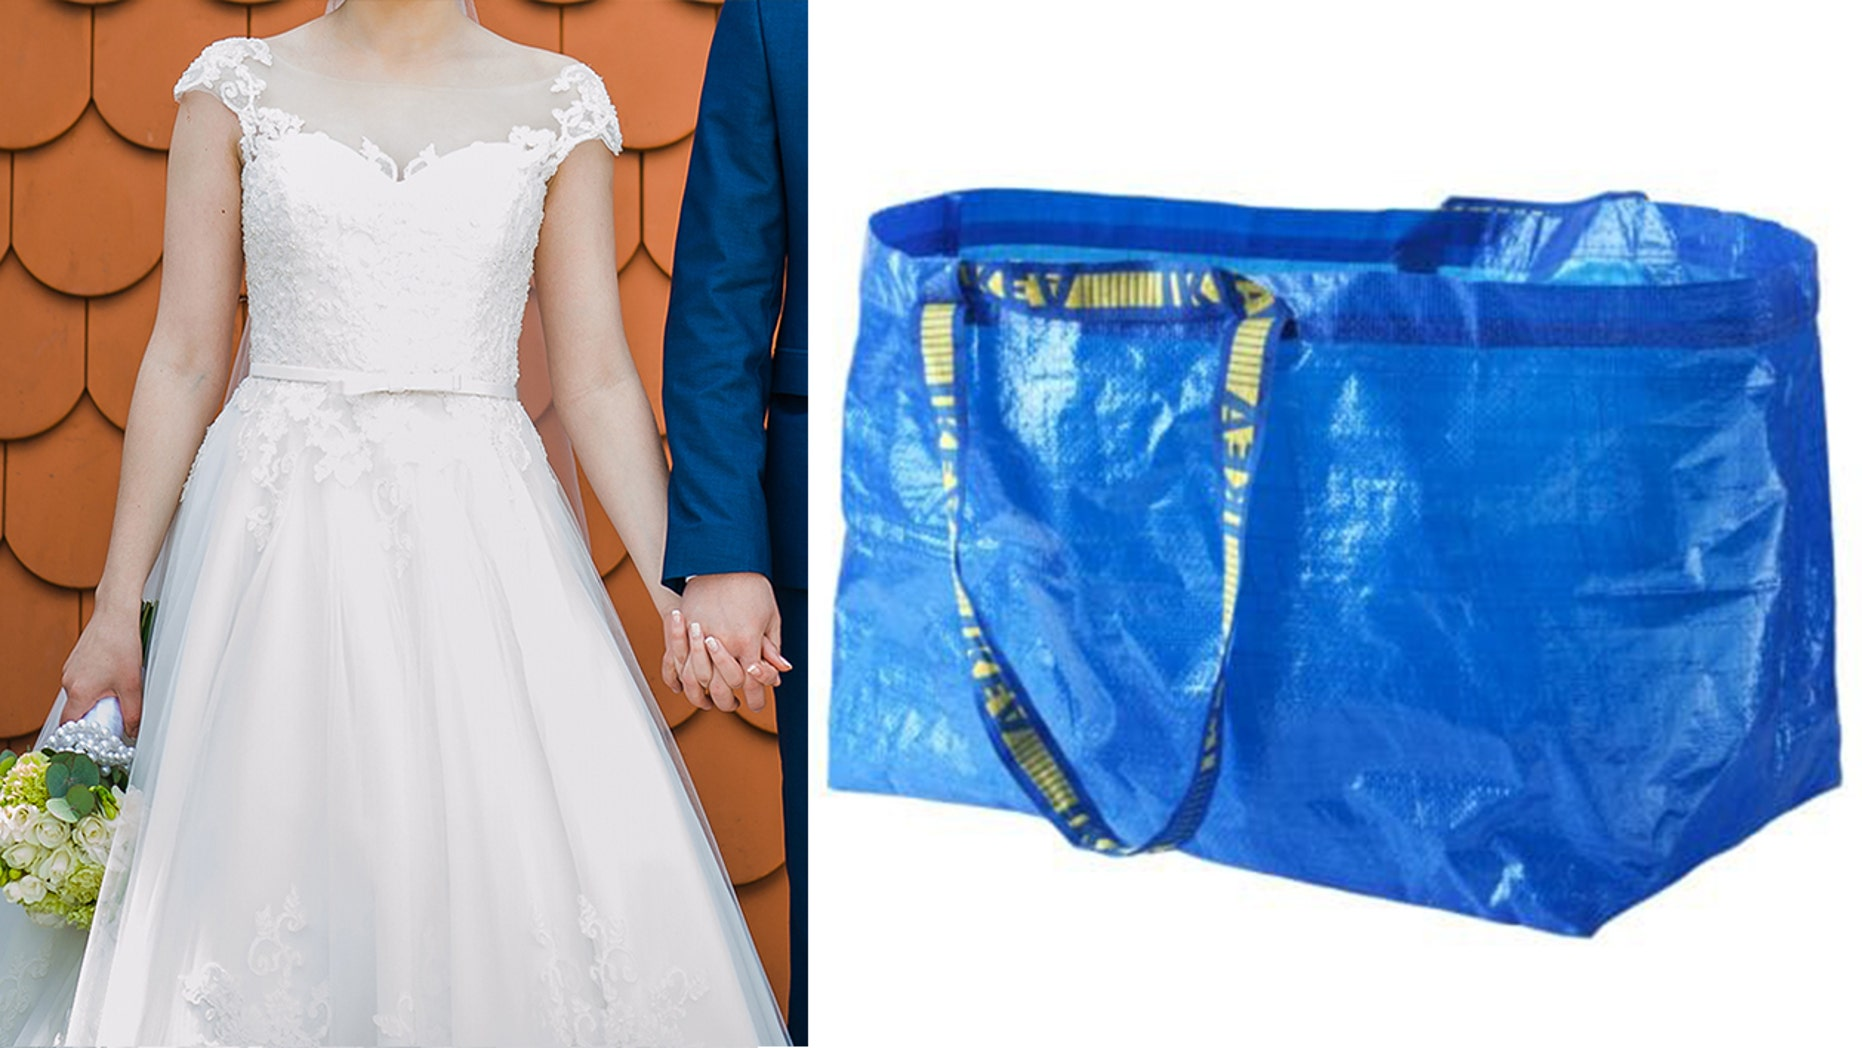 One clever bride invented an inexpensive hack with the help of an Ikea bag for using the bathroom on her big day.